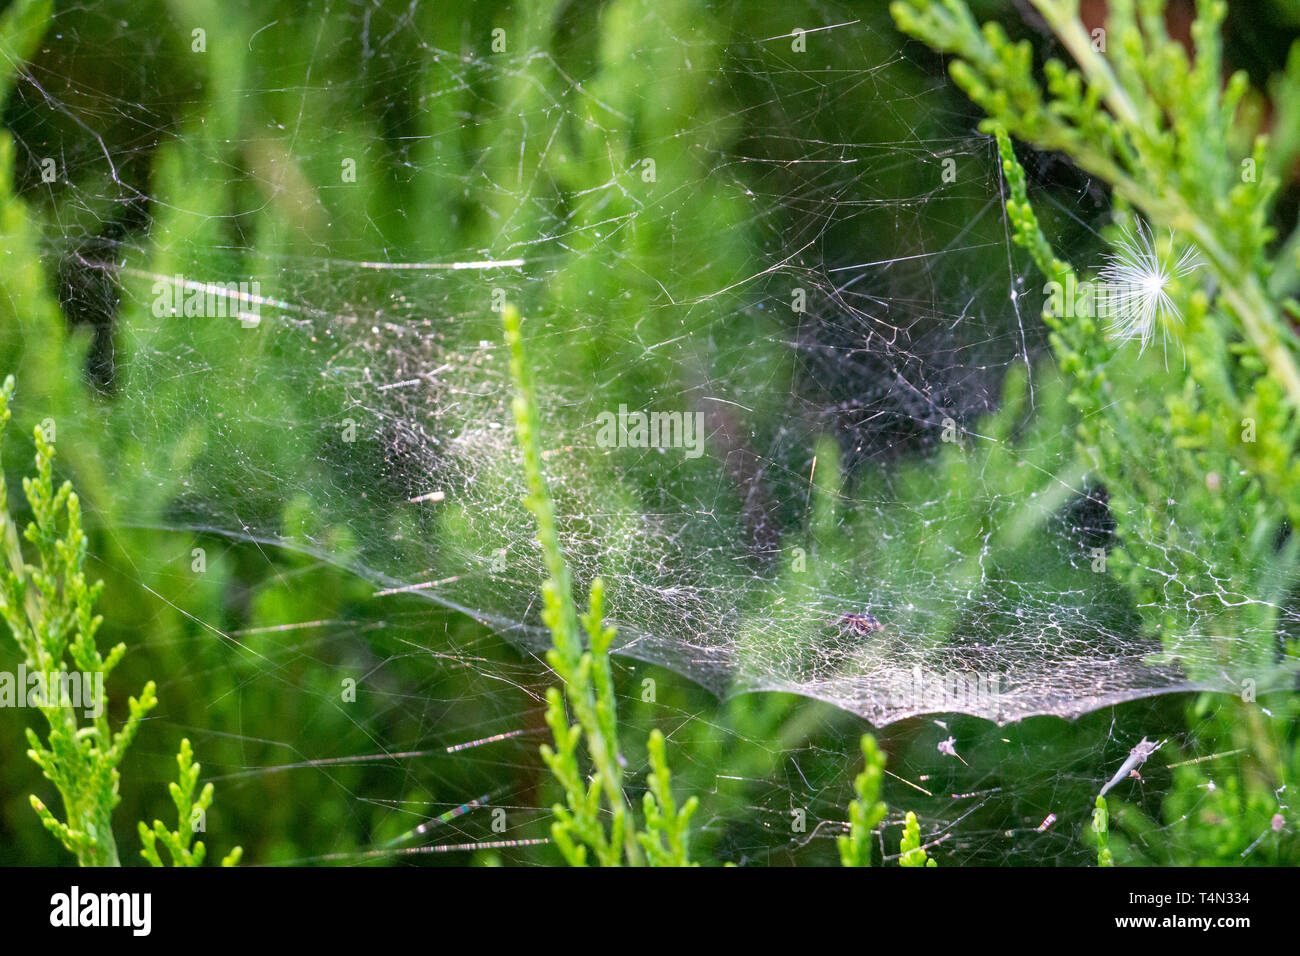 A parachute seed caught in a tangle web on blurred green conifer hedge branches in Krum, Southern Bulgaria - Stock Image